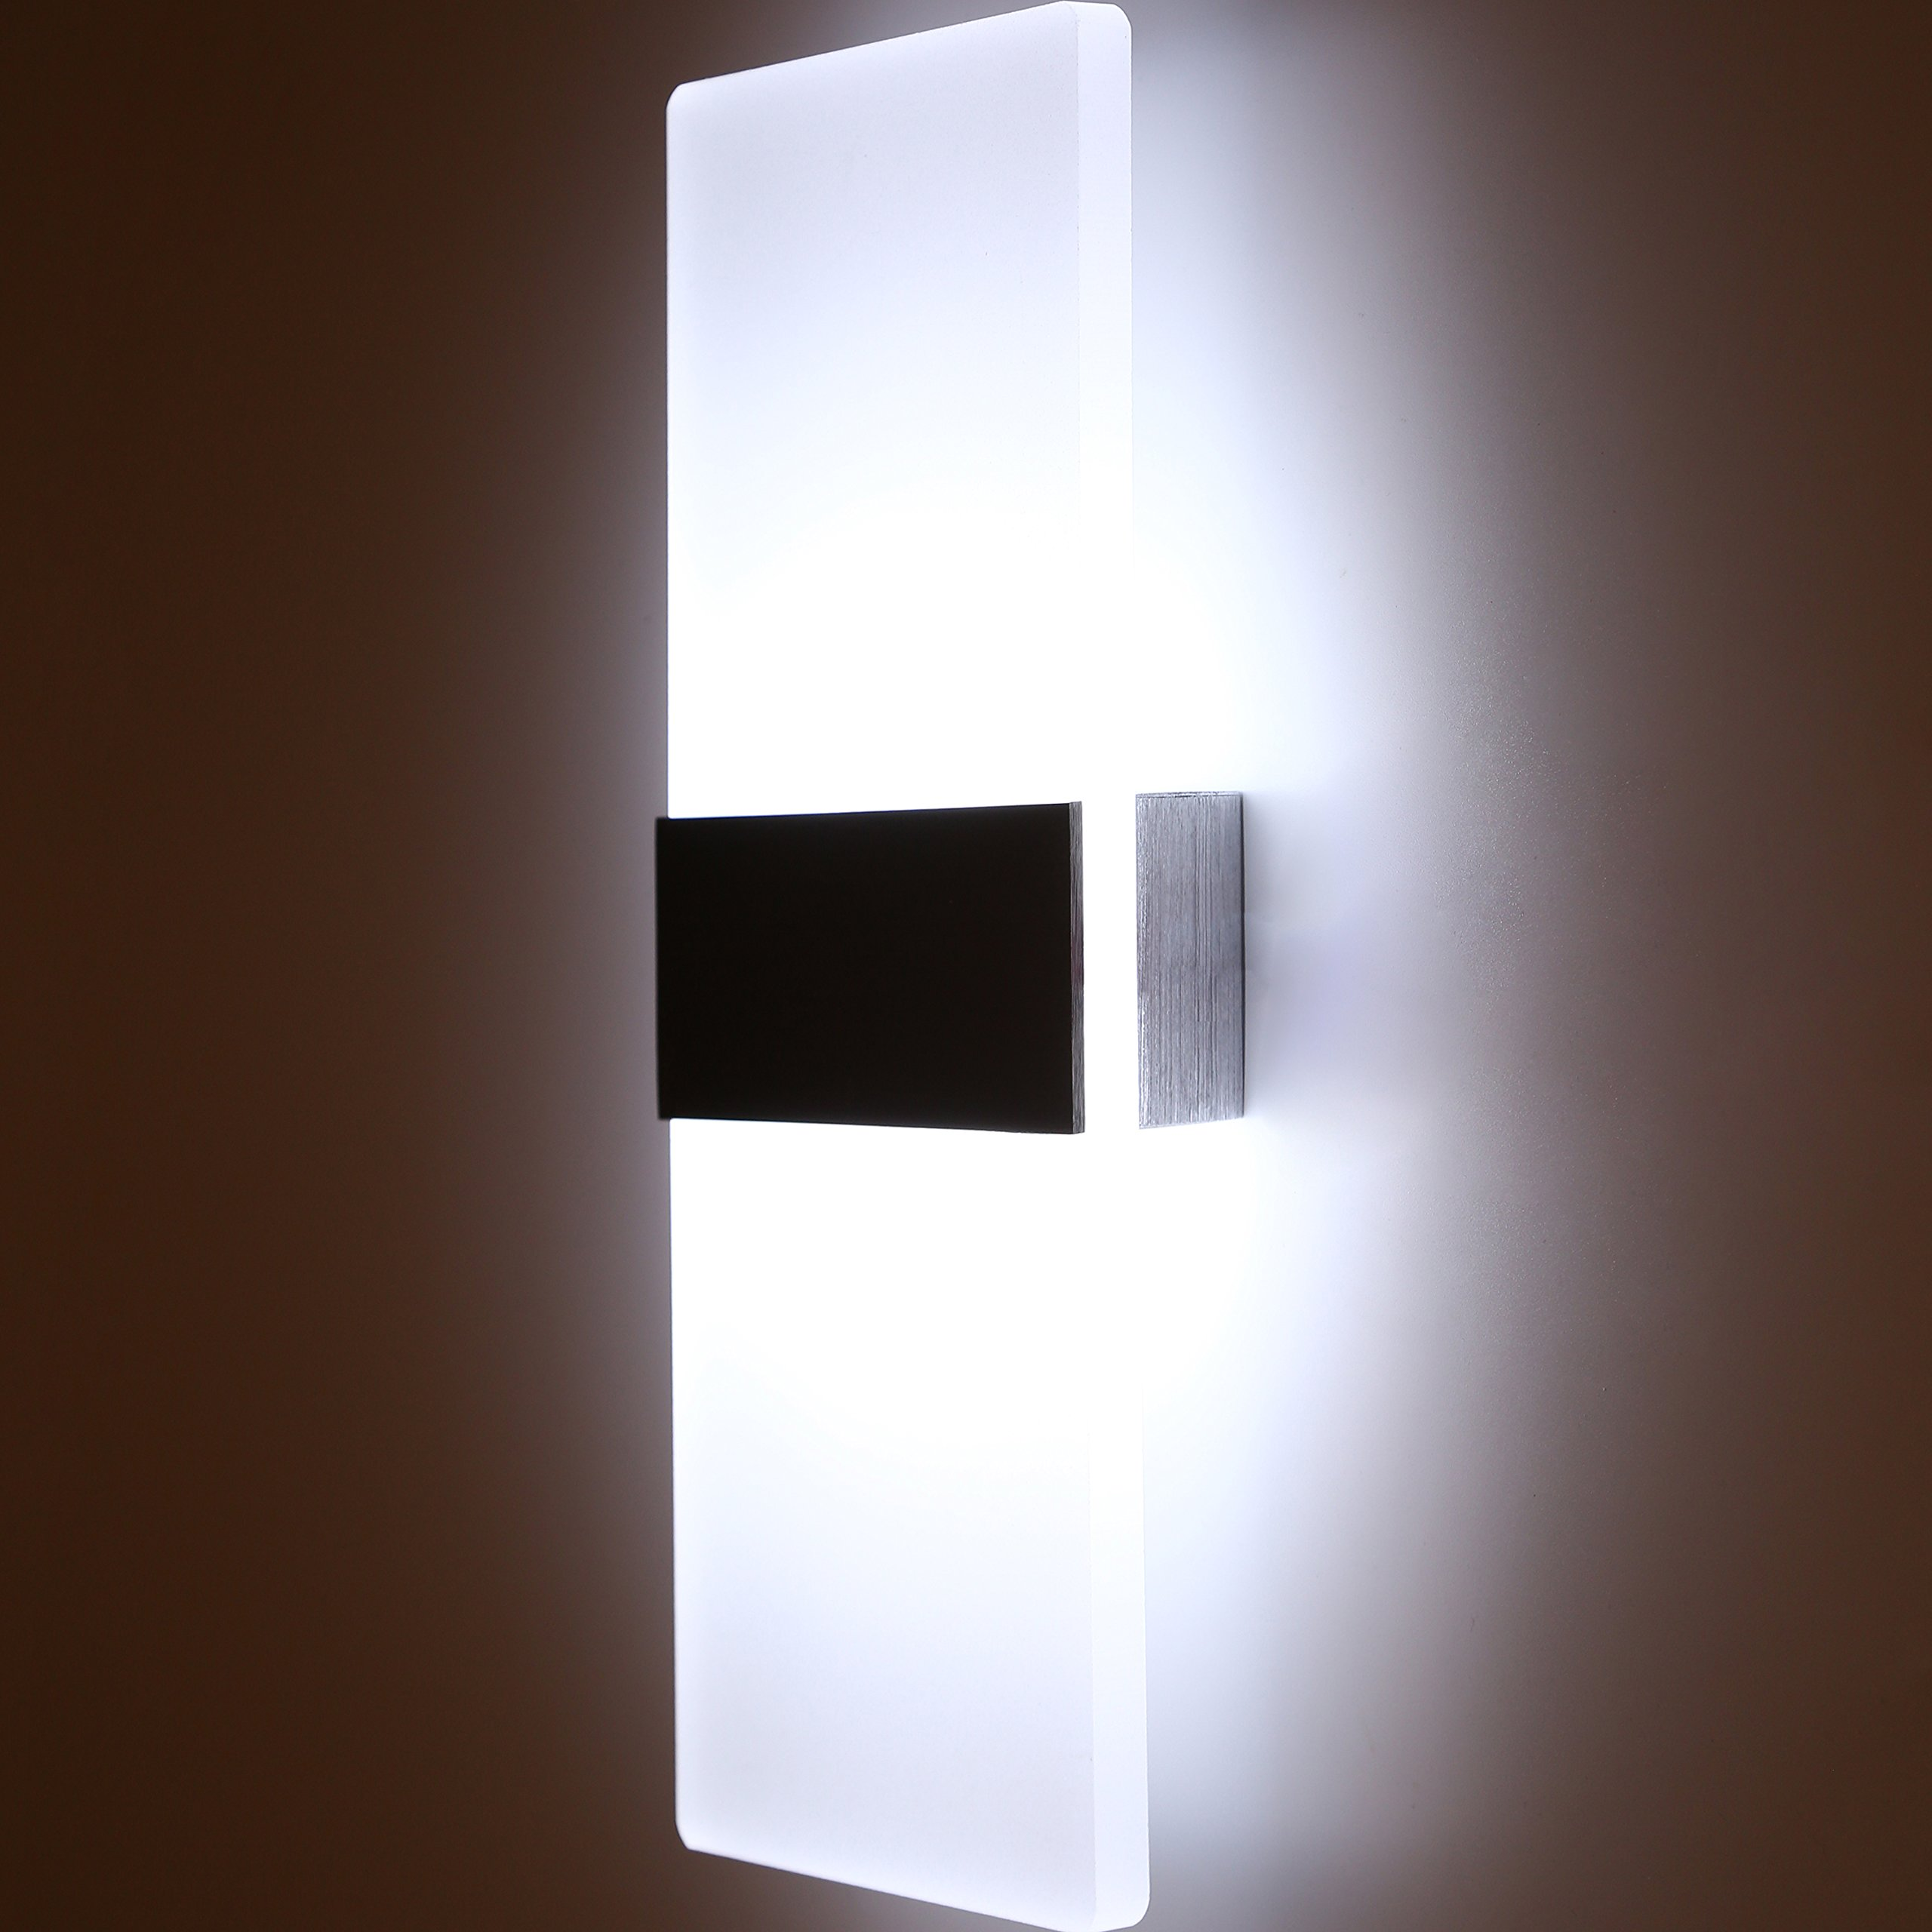 Topmo Modern Acrylic 12w LED Wall Sconces Aluminum Lights Decorative Lamps Night Light for Pathway, Staircase, Bedroom, Balcony ,Drive Way,cold white 840LM(6000K)29114.8CM